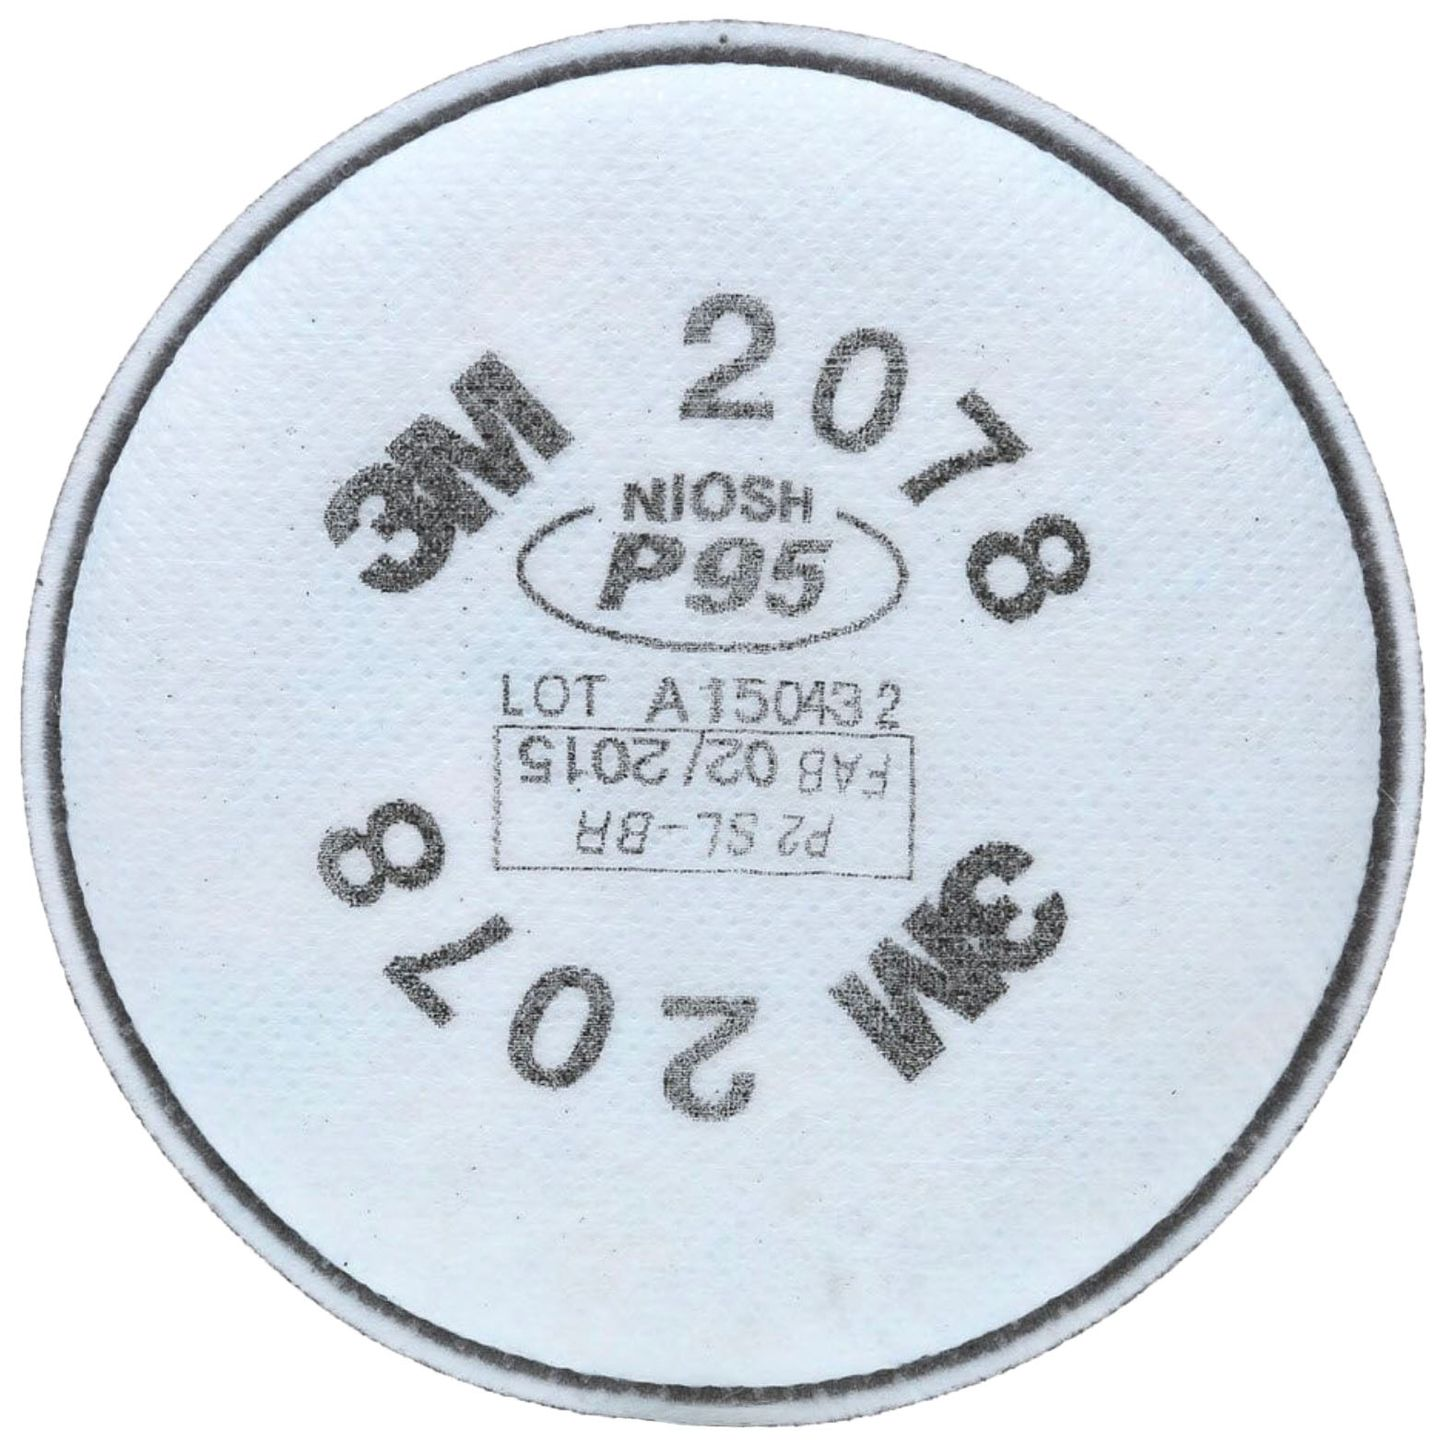 3m-2078-p95-filters-nuisance-ov-acid-gas-relief-front.jpg